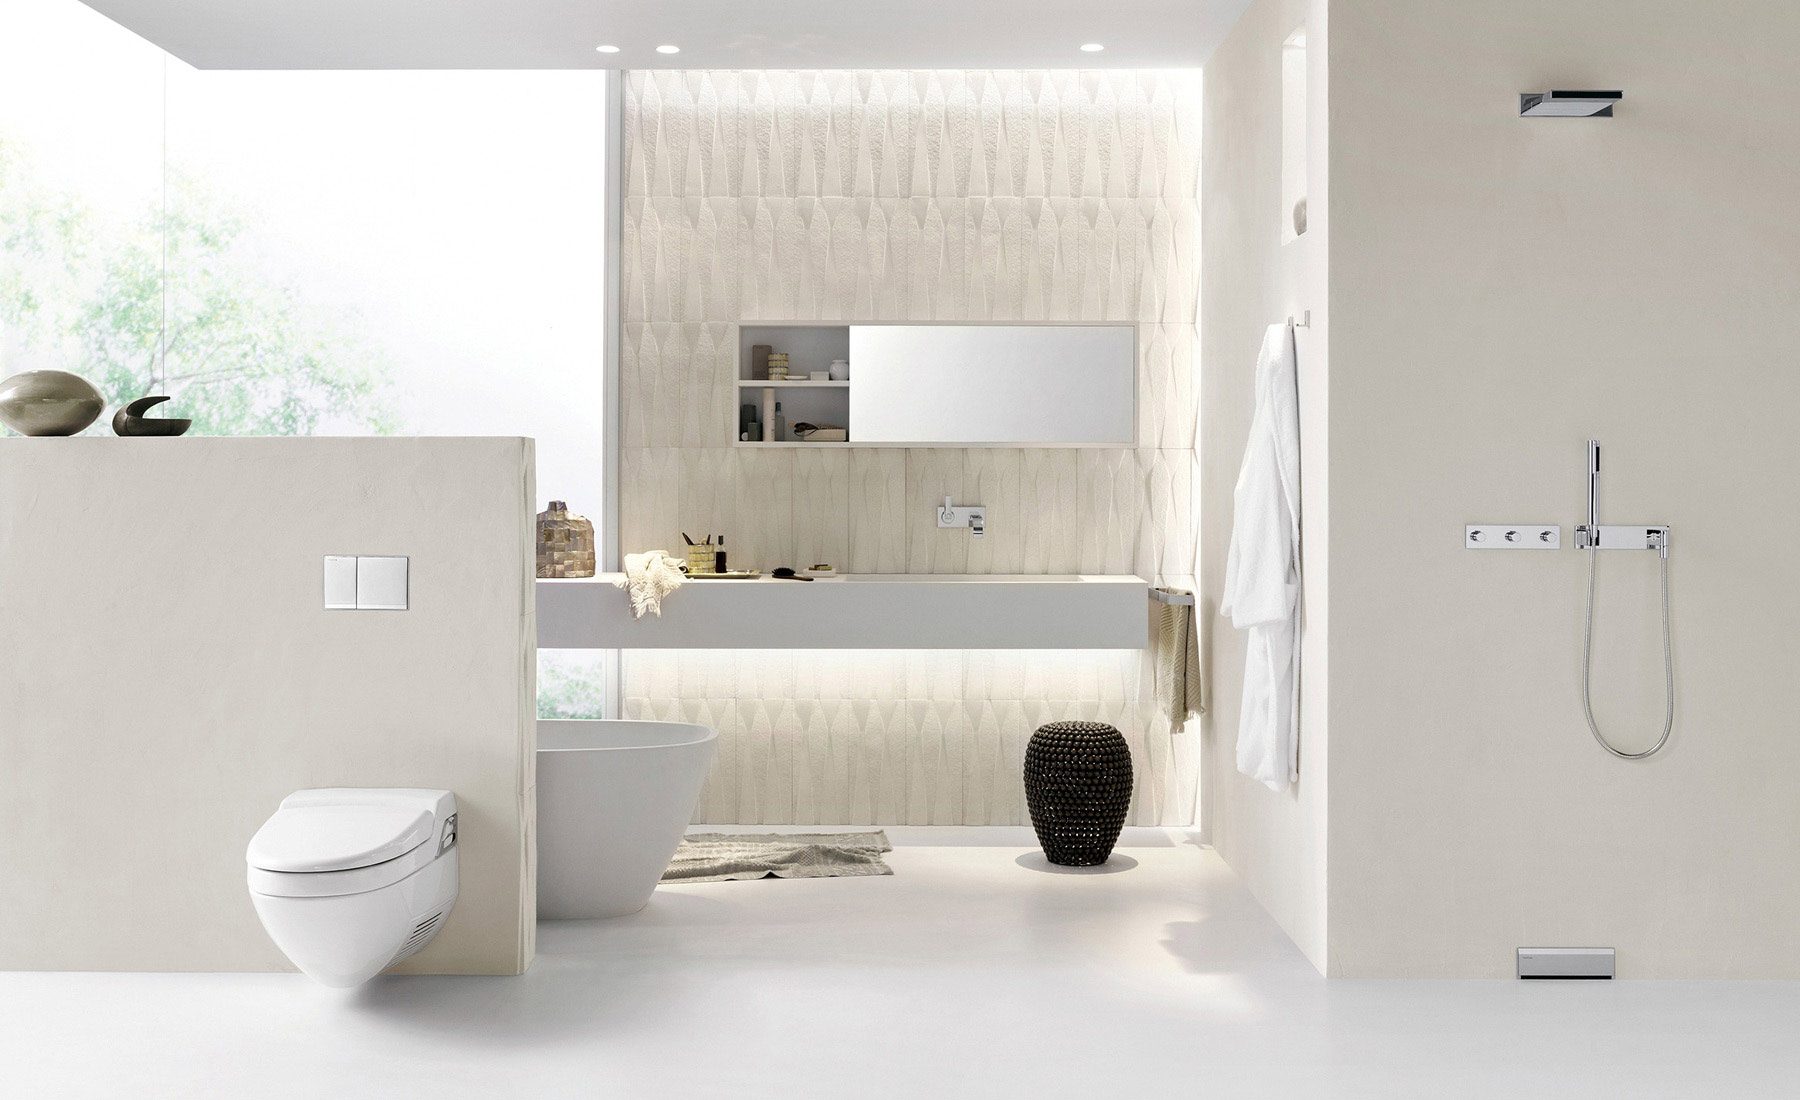 Bad gefliest raum und m beldesign inspiration for Badezimmer modern gefliest